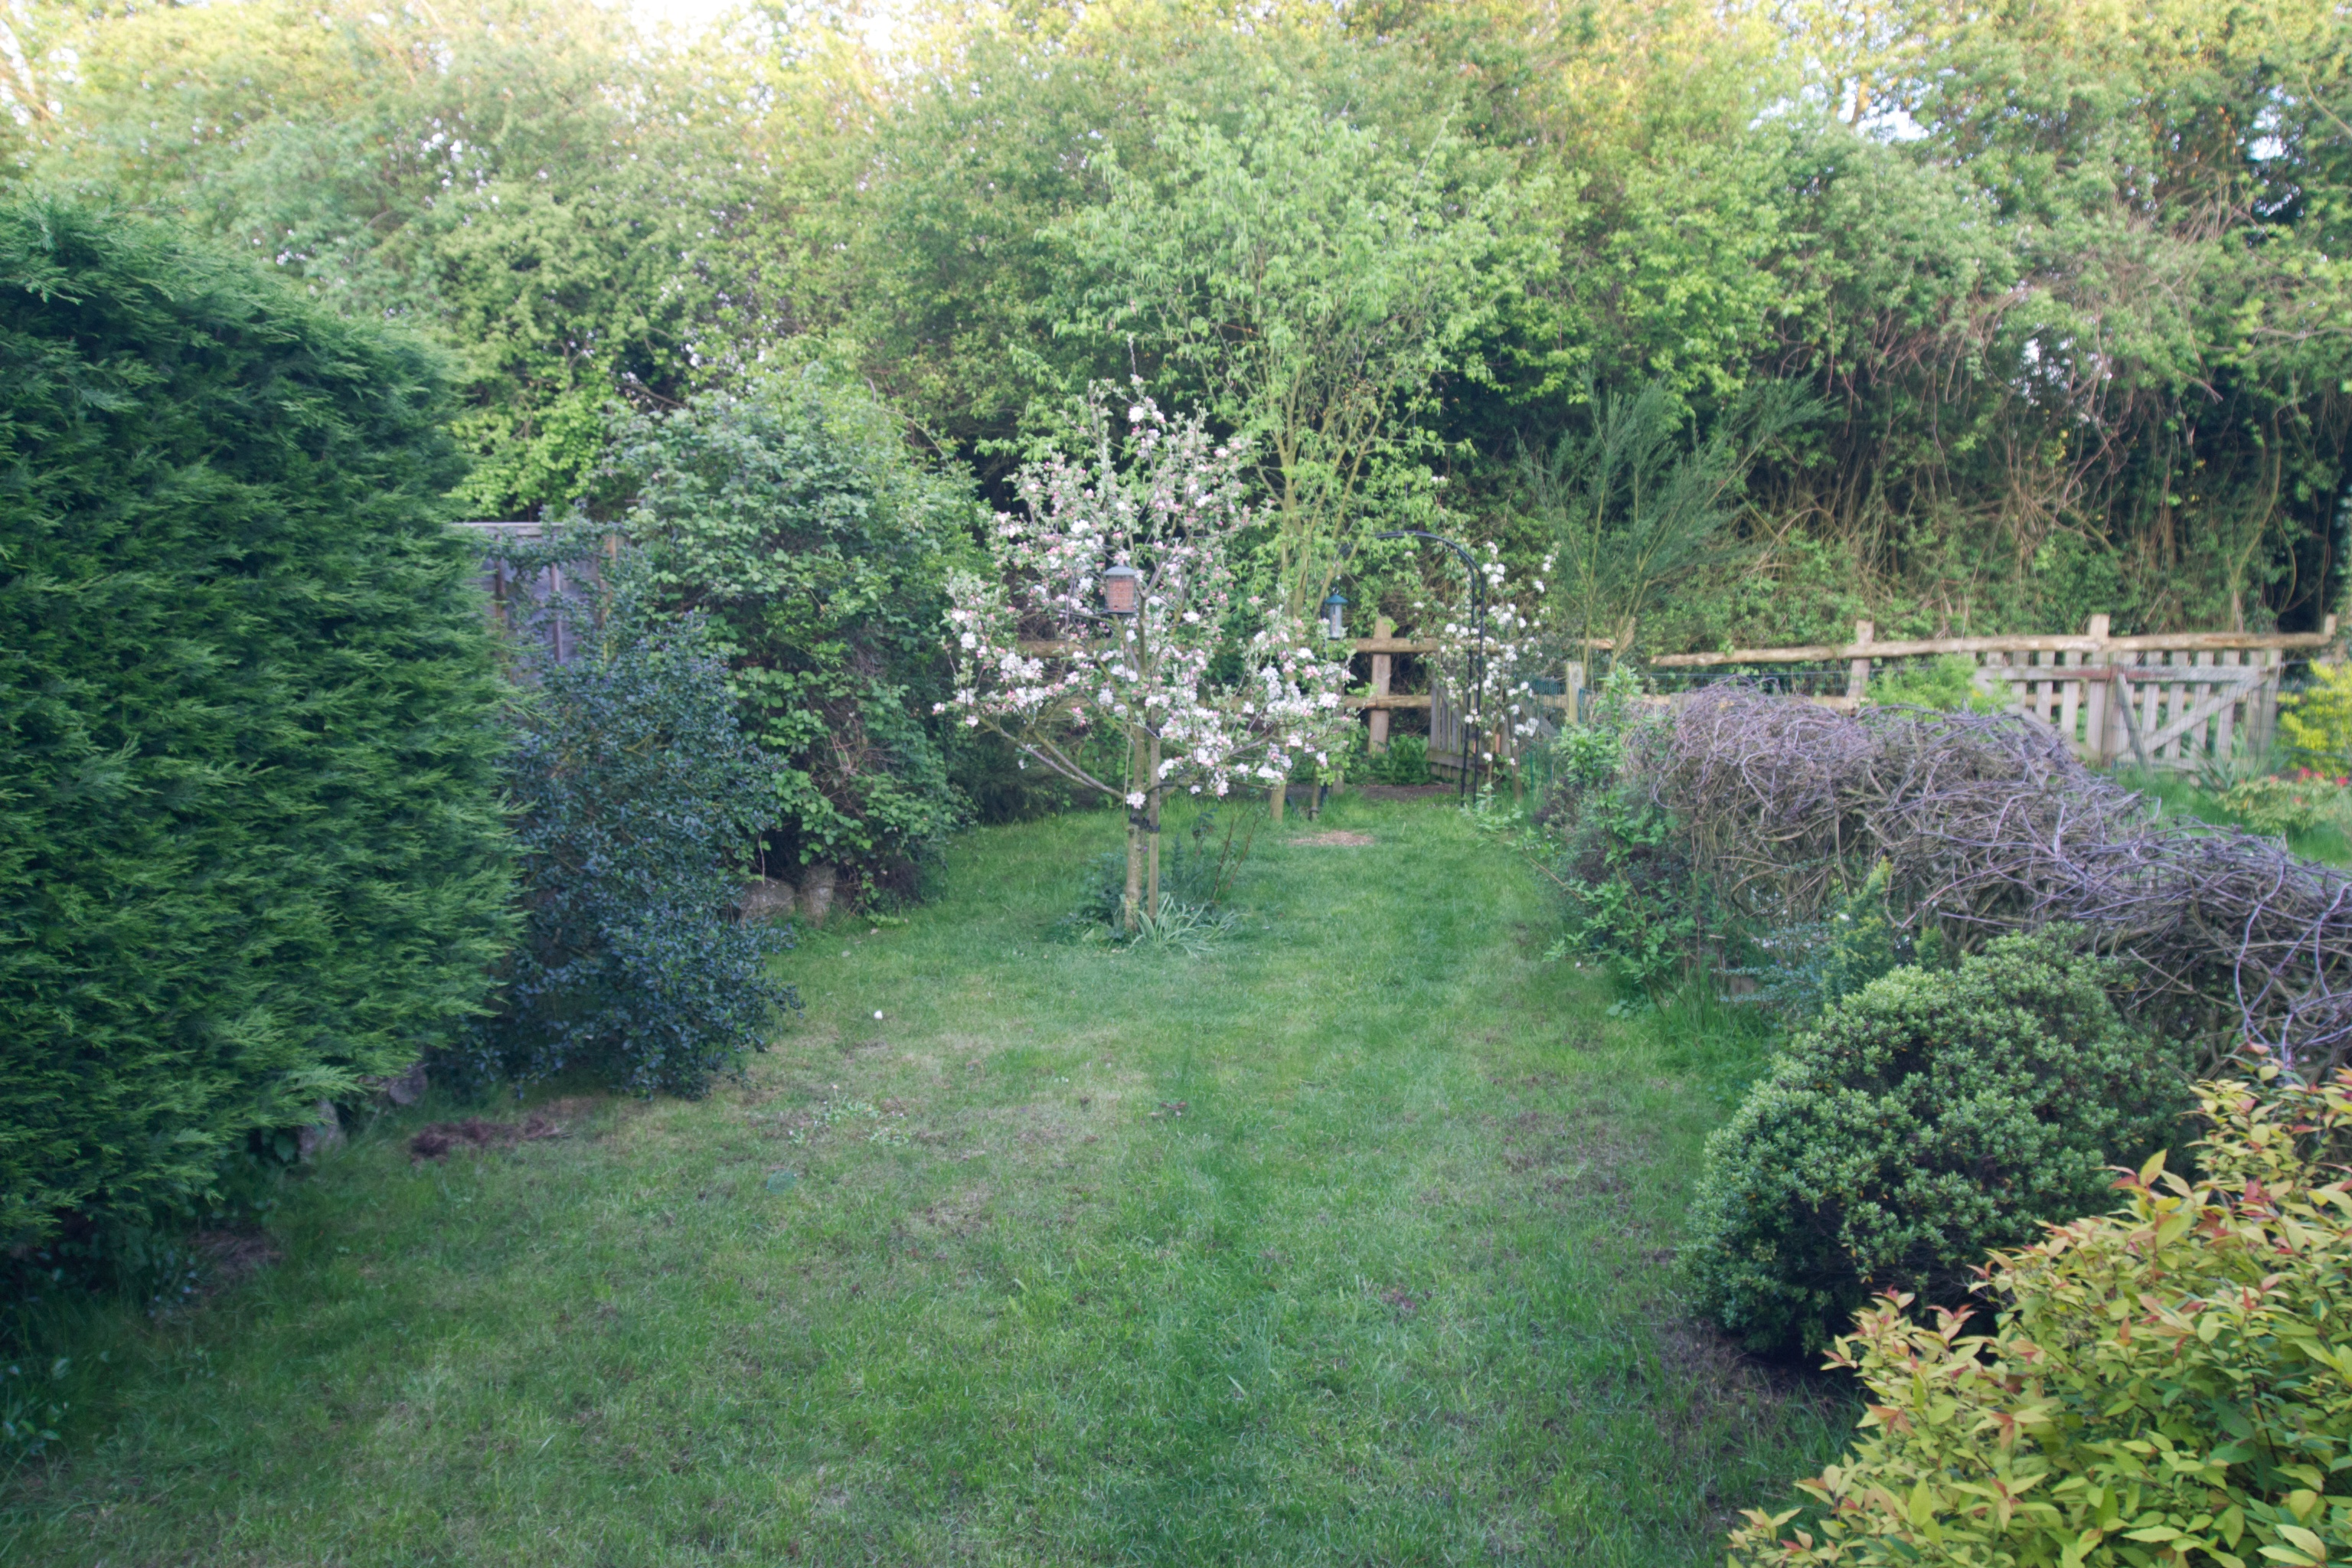 Original garden circa 2004 - Away from house